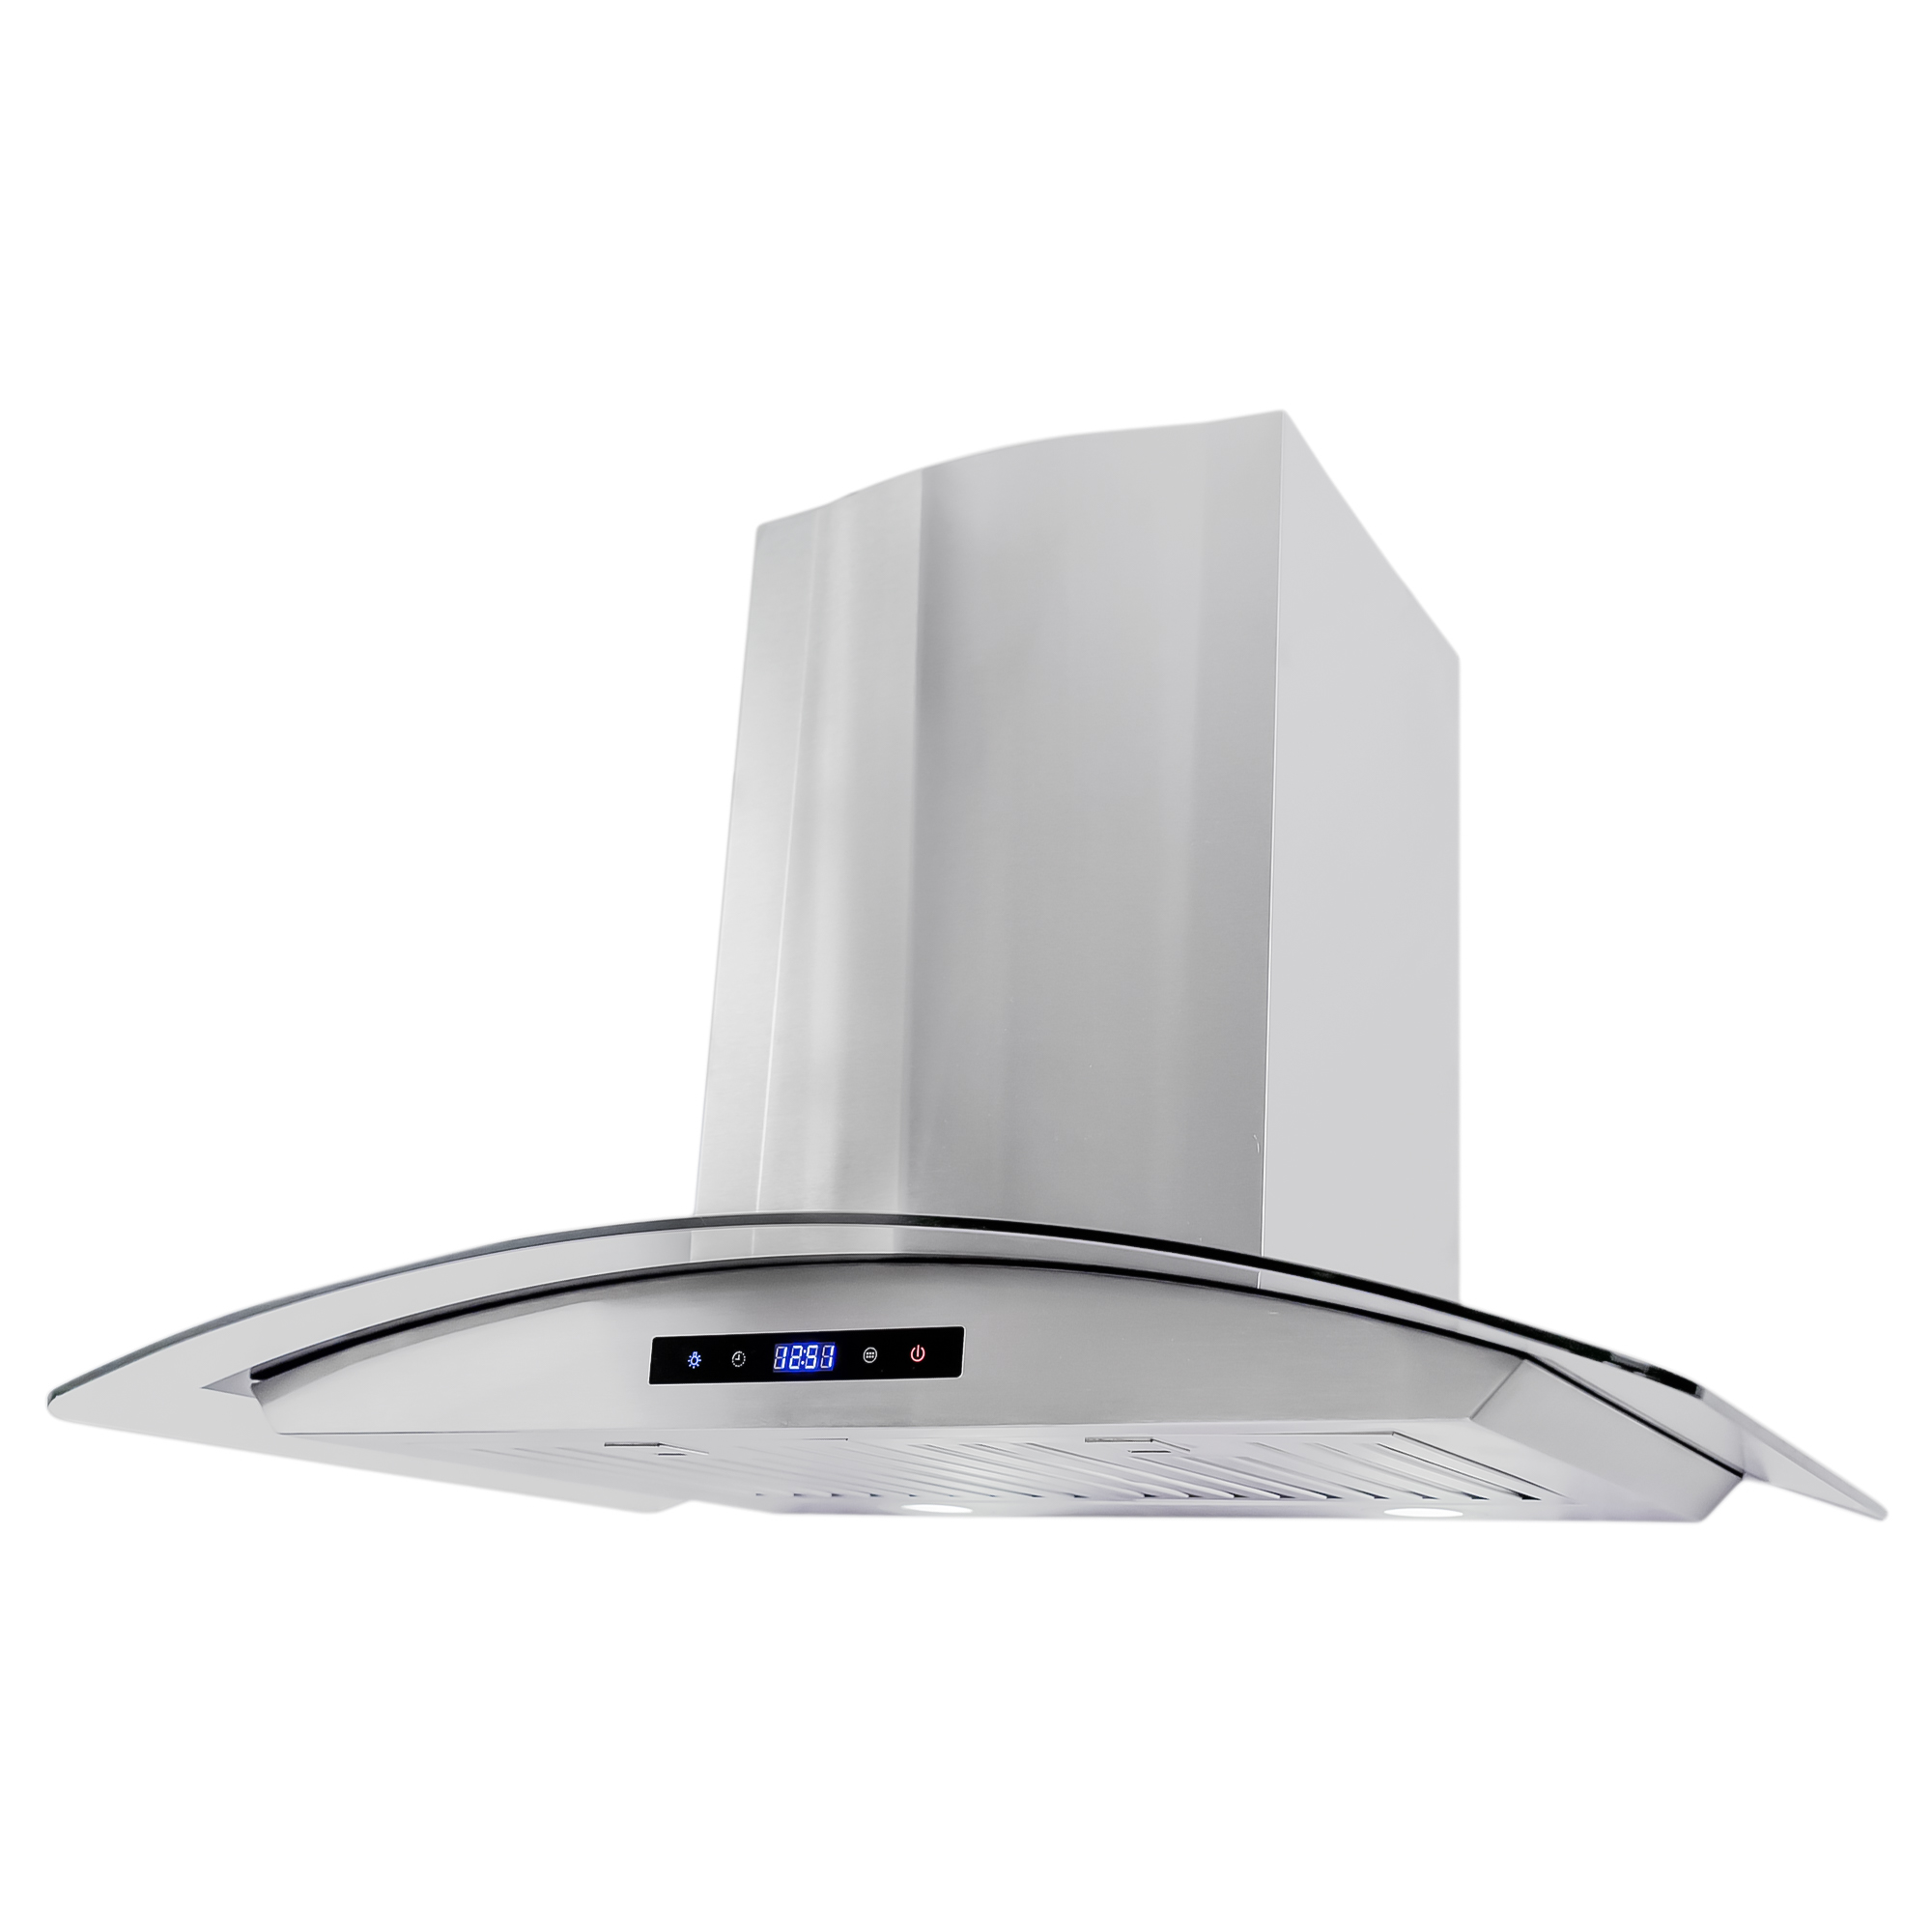 30 In Wall Mount Range Hood With Touch Controls Cosmo